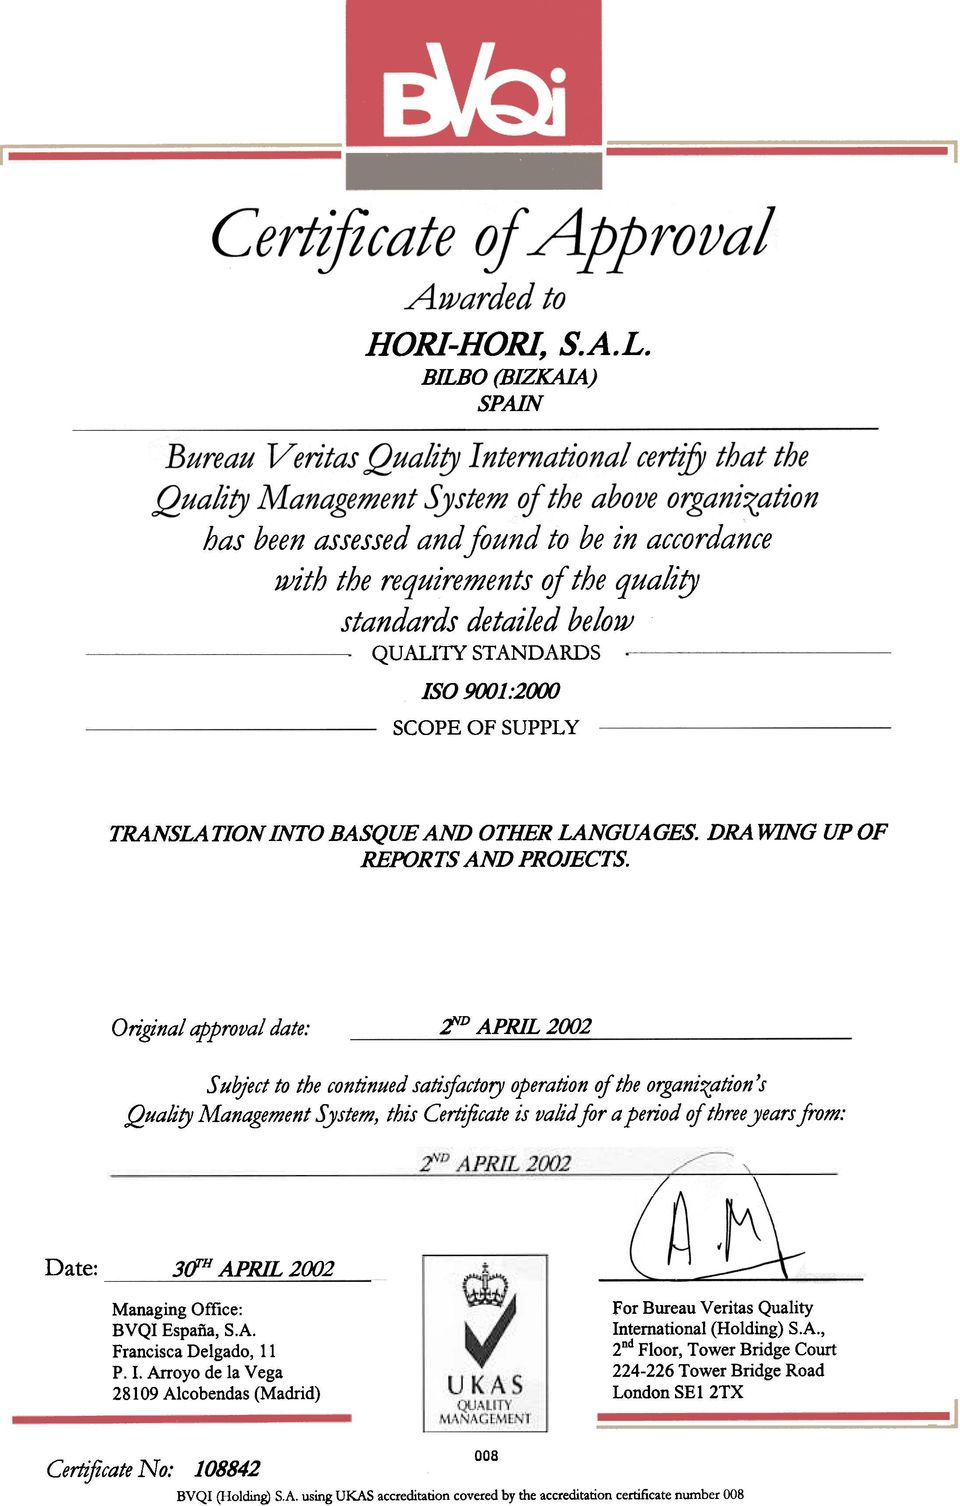 Original approval date: rd APRlL 2002 Subject to the continued satisfactory operation of the organization's Quality Management S ystem, this Certiftcate is valid for a period of three years from: